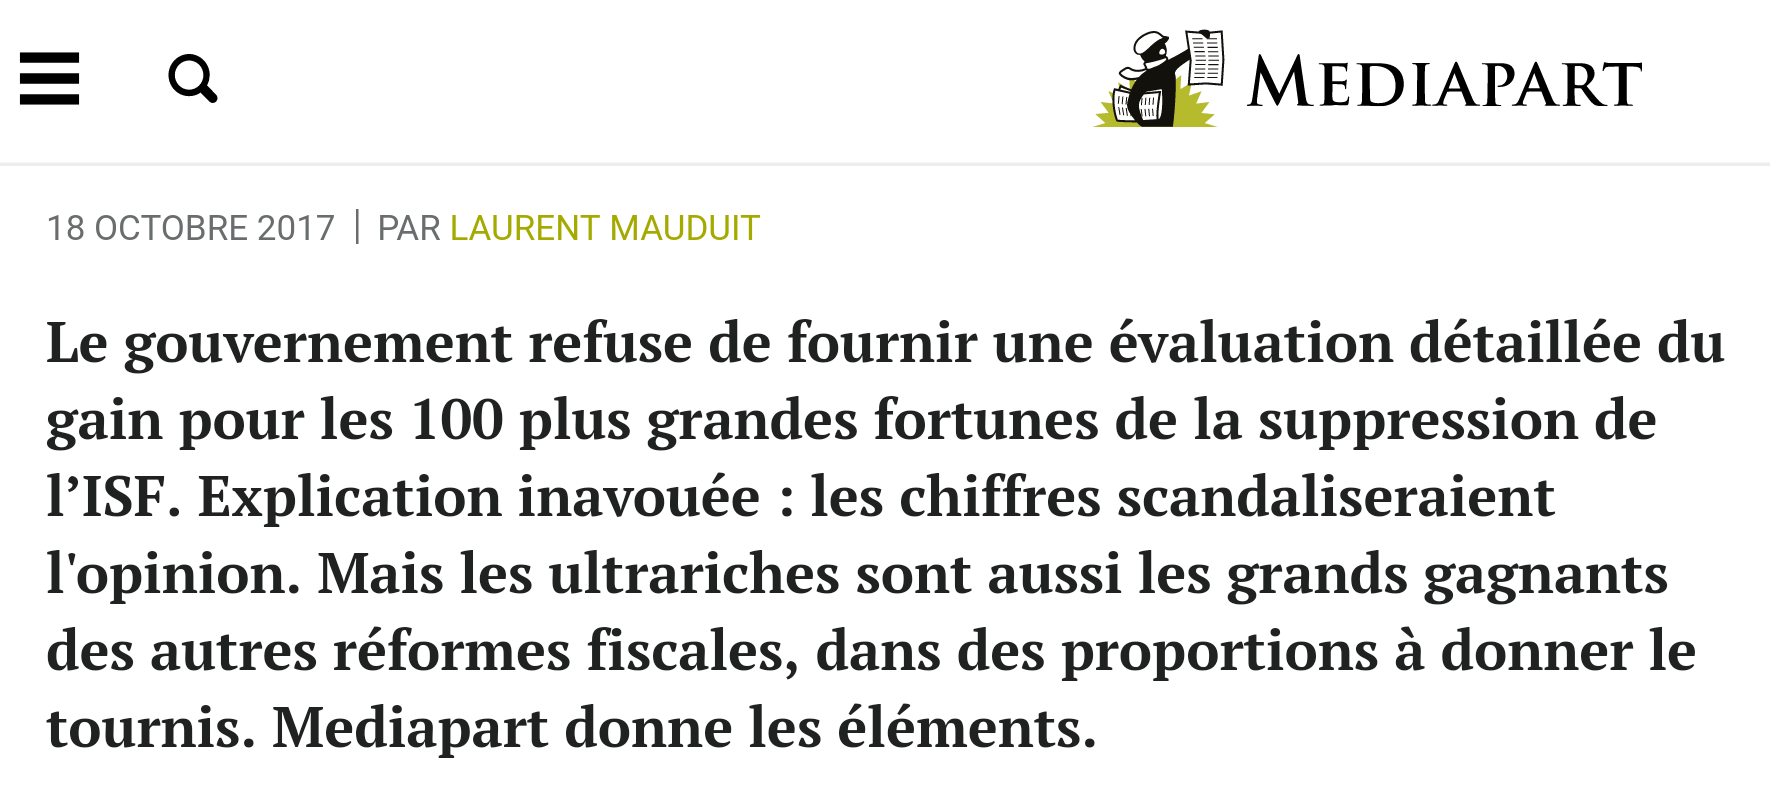 Secret Fiscal ISF Bercy Mediapart Bruno le maire